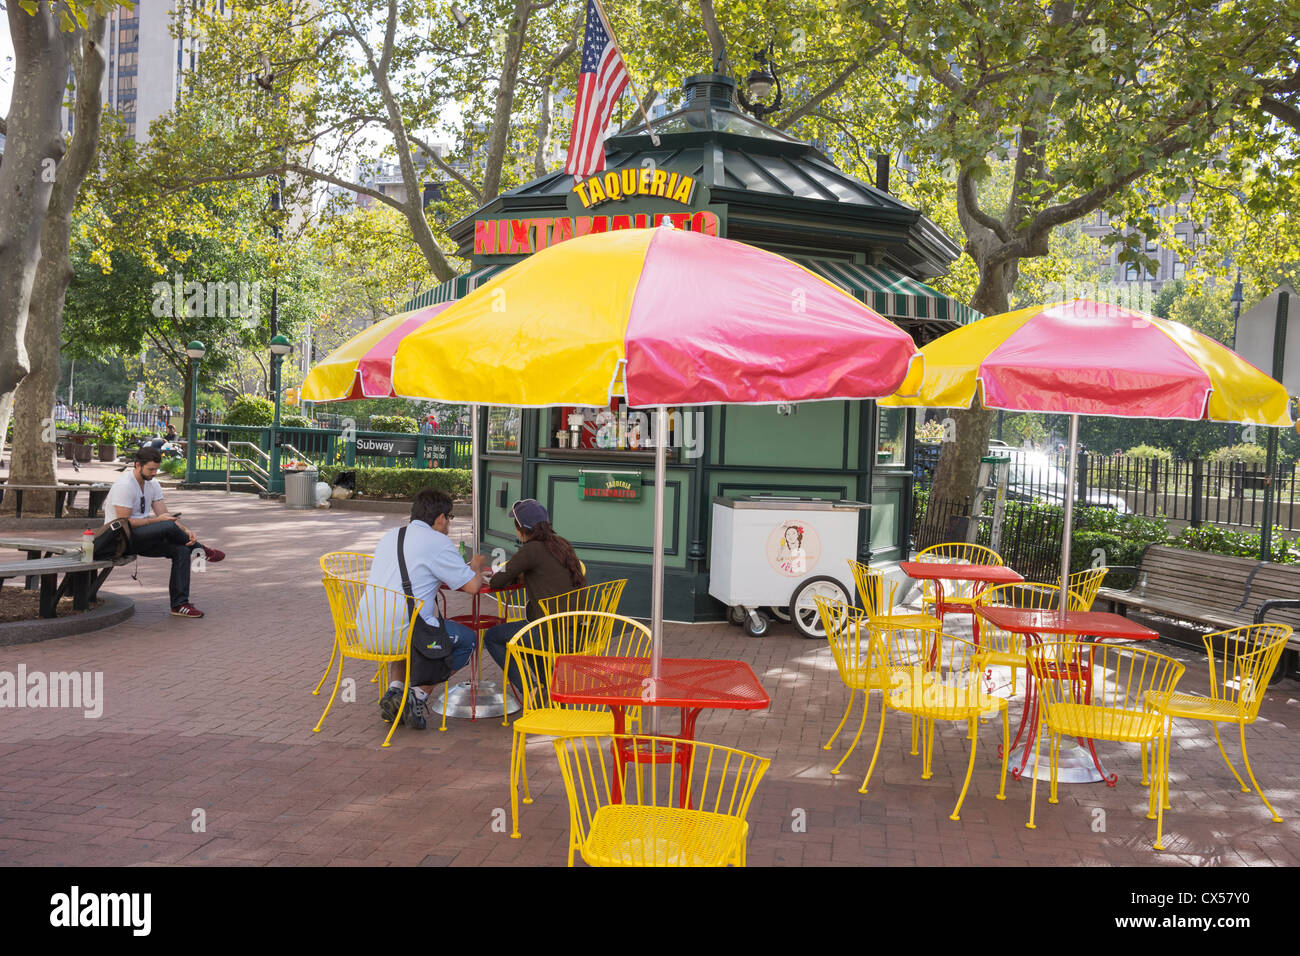 A fast-food stand with cafe tables near City Hall in New York City - Stock Image